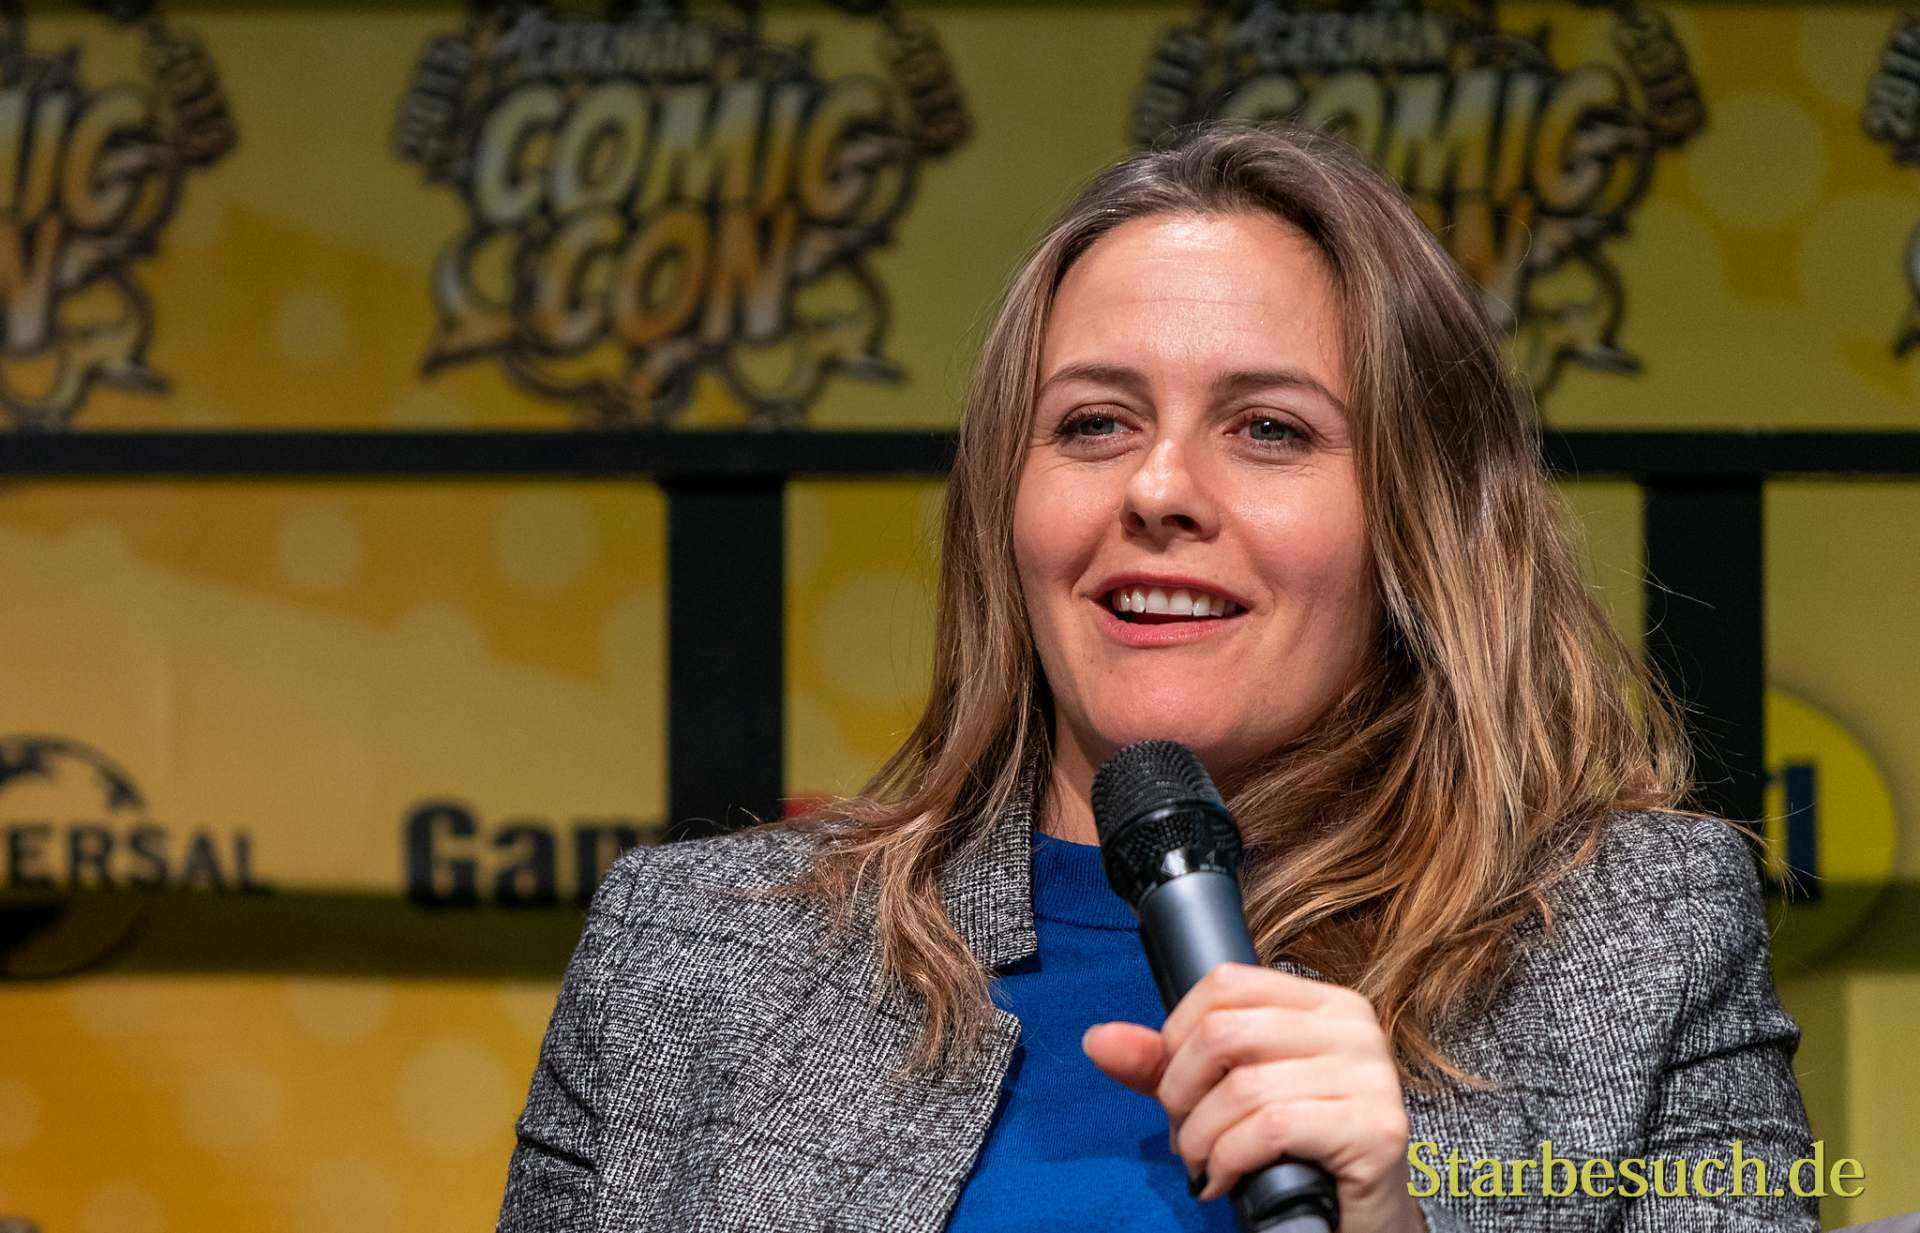 DORTMUND, GERMANY - December 7th 2019: Alicia Silverstone at German Comic Con Dortmund